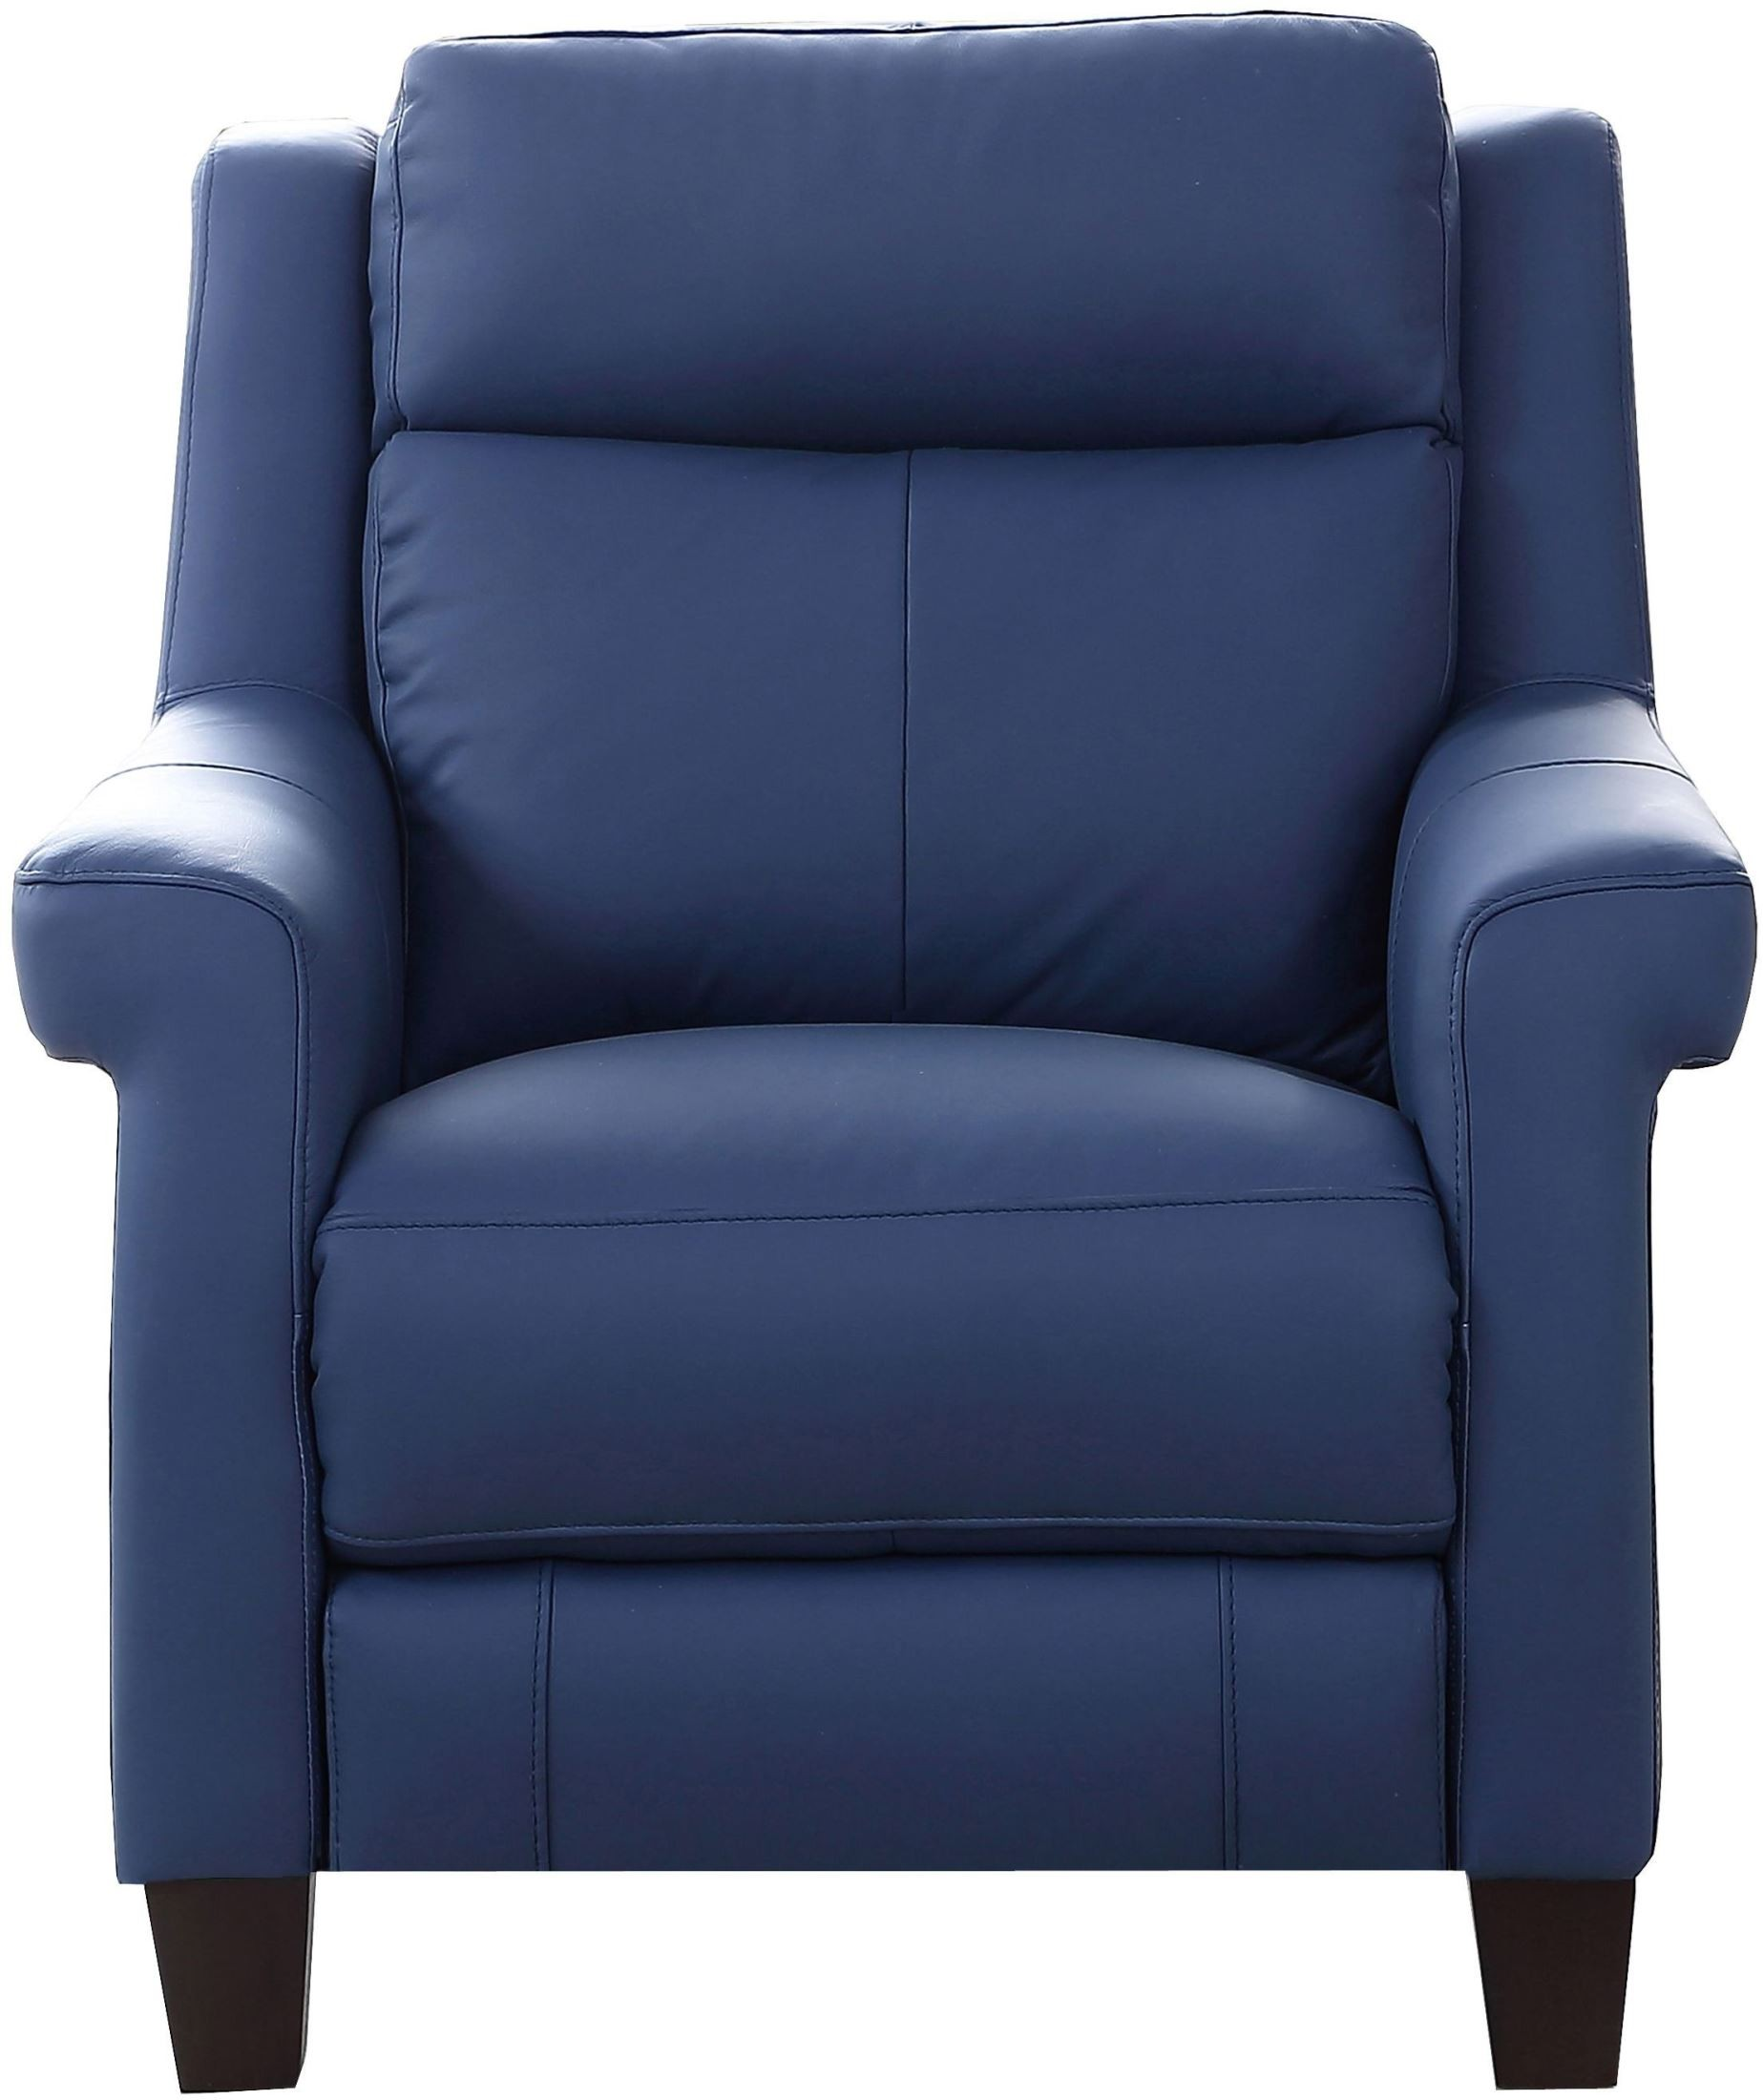 Dolce Blue Power Recliner With Power Headrest From Amax